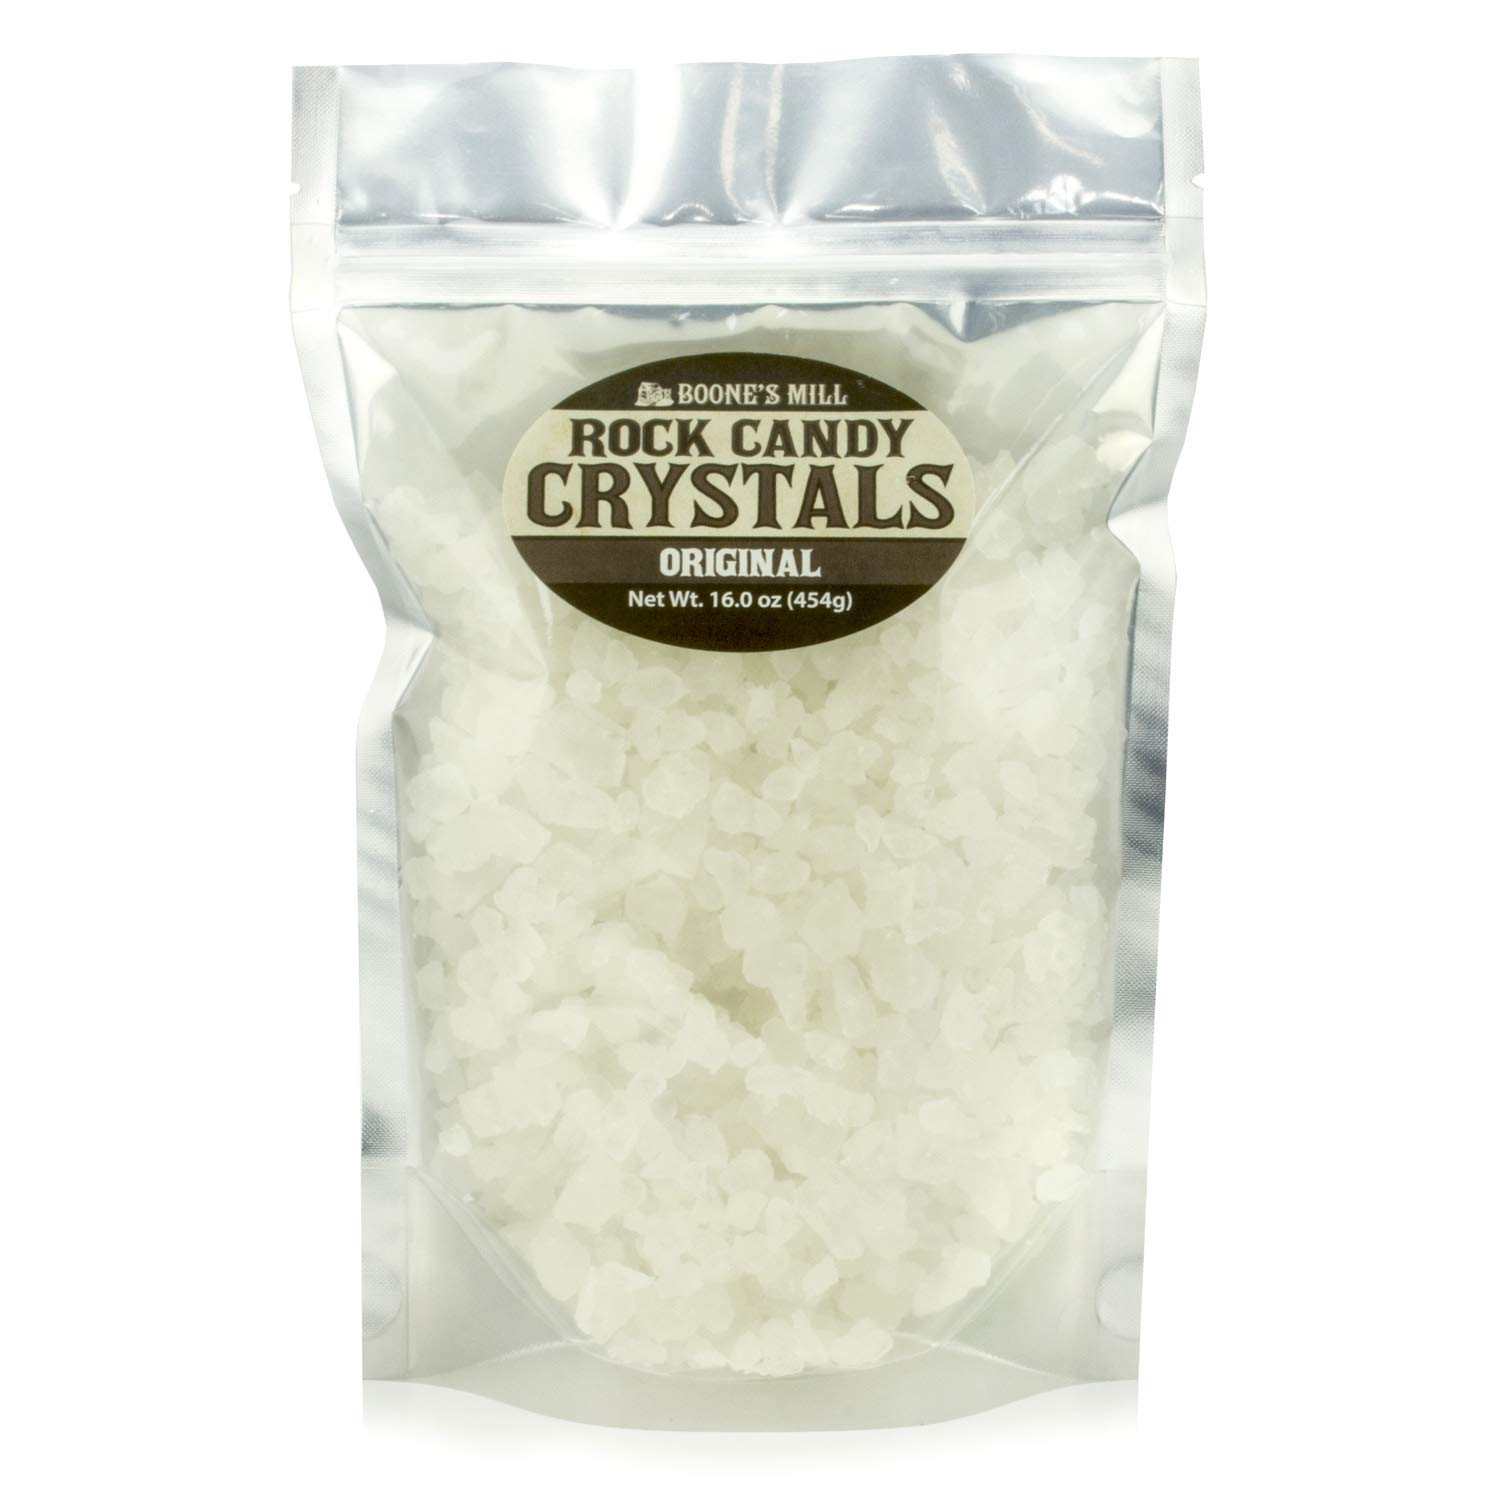 Clear - Original Rock Crystal Candy | 1 Pound In A Resealable Stand-Up Bag | Boone's Mill by Boone's Mill